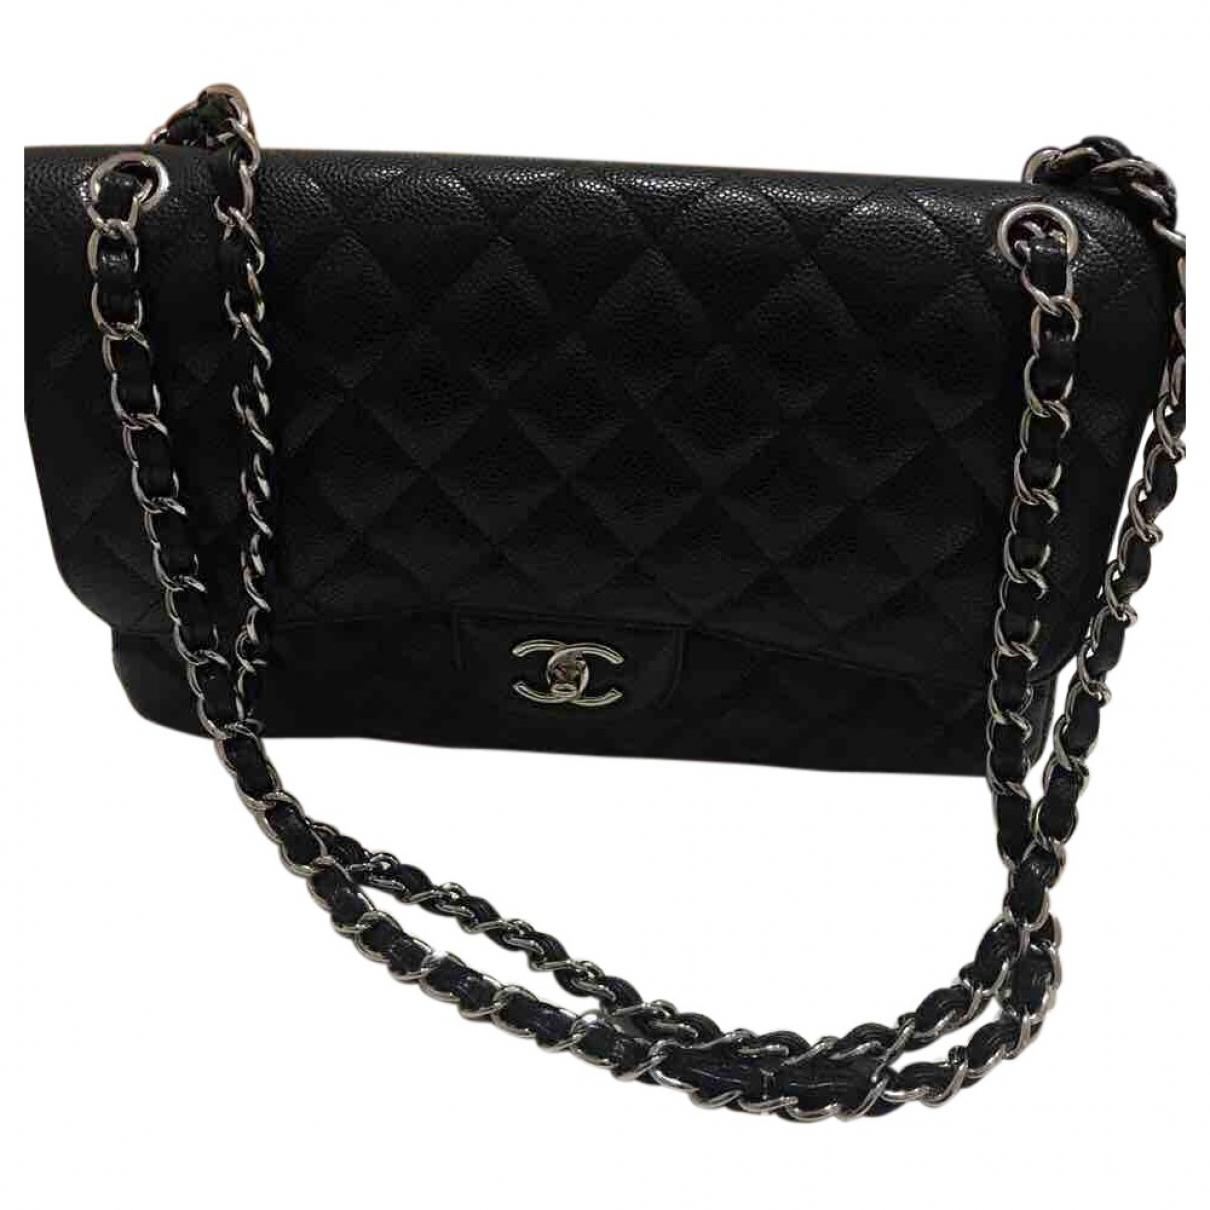 Chanel Pre-owned - Timeless leather bag ZFw4Lg